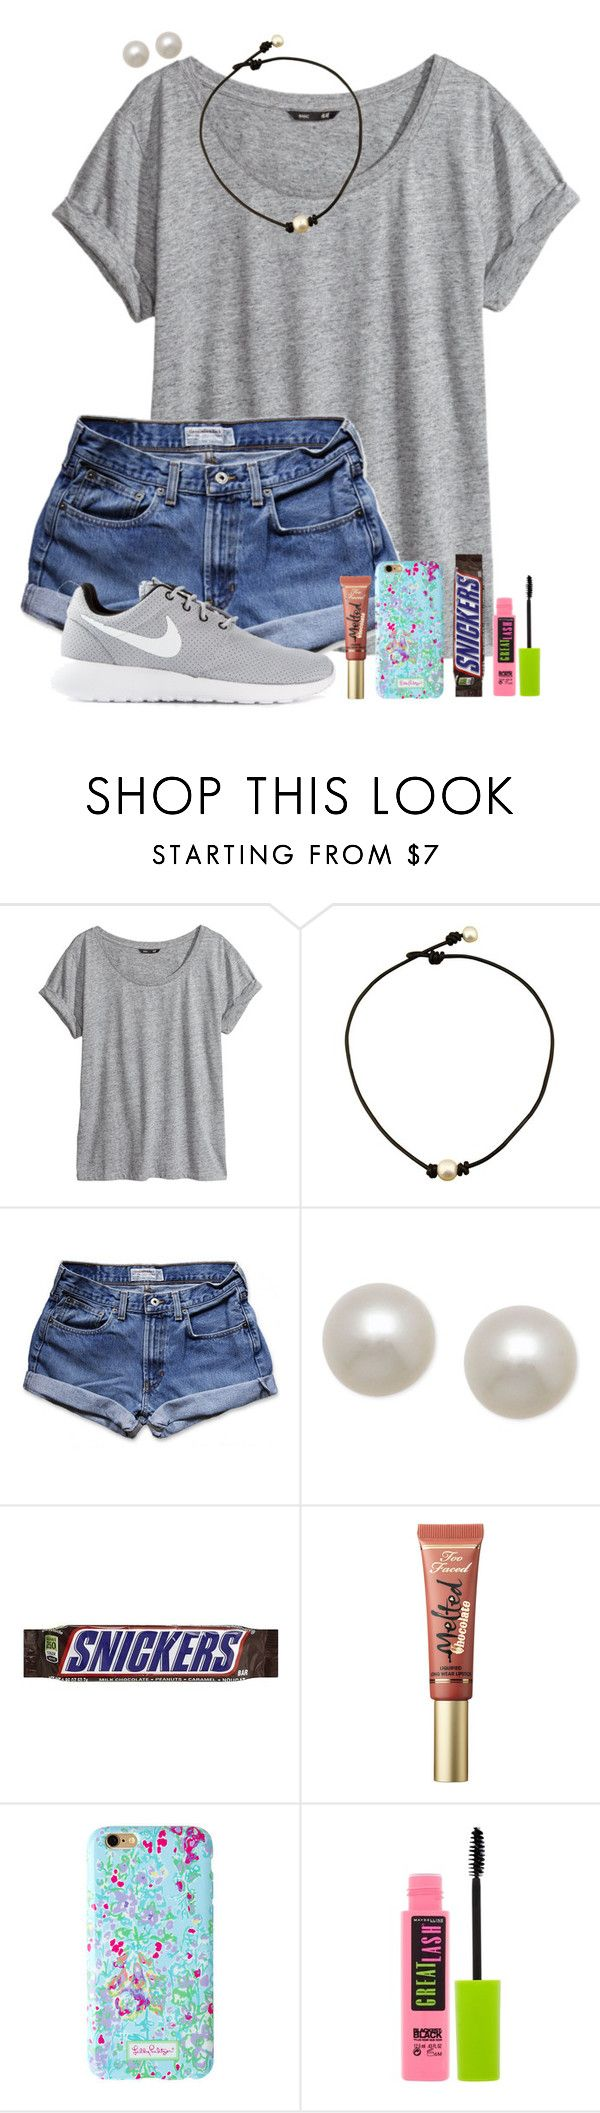 """pls read description"" by theblonde07 ❤ liked on Polyvore featuring H&M, Abercrombie & Fitch, Honora, Too Faced Cosmetics, Maybelline and NIKE"